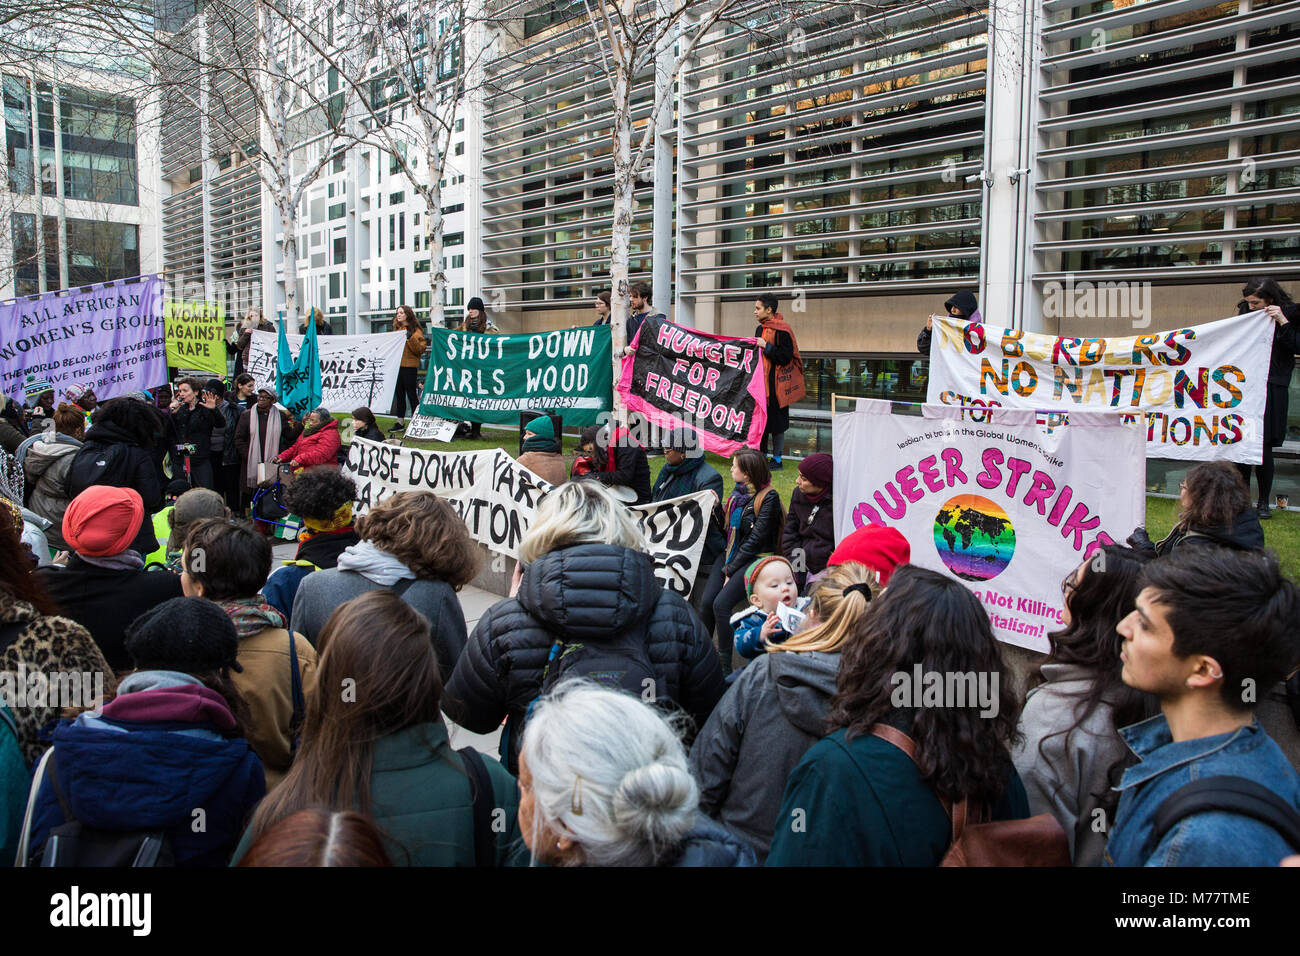 London, UK. 8th March, 2018. Women protest outside the Home Office on International Women's Day in solidarity - Stock Image